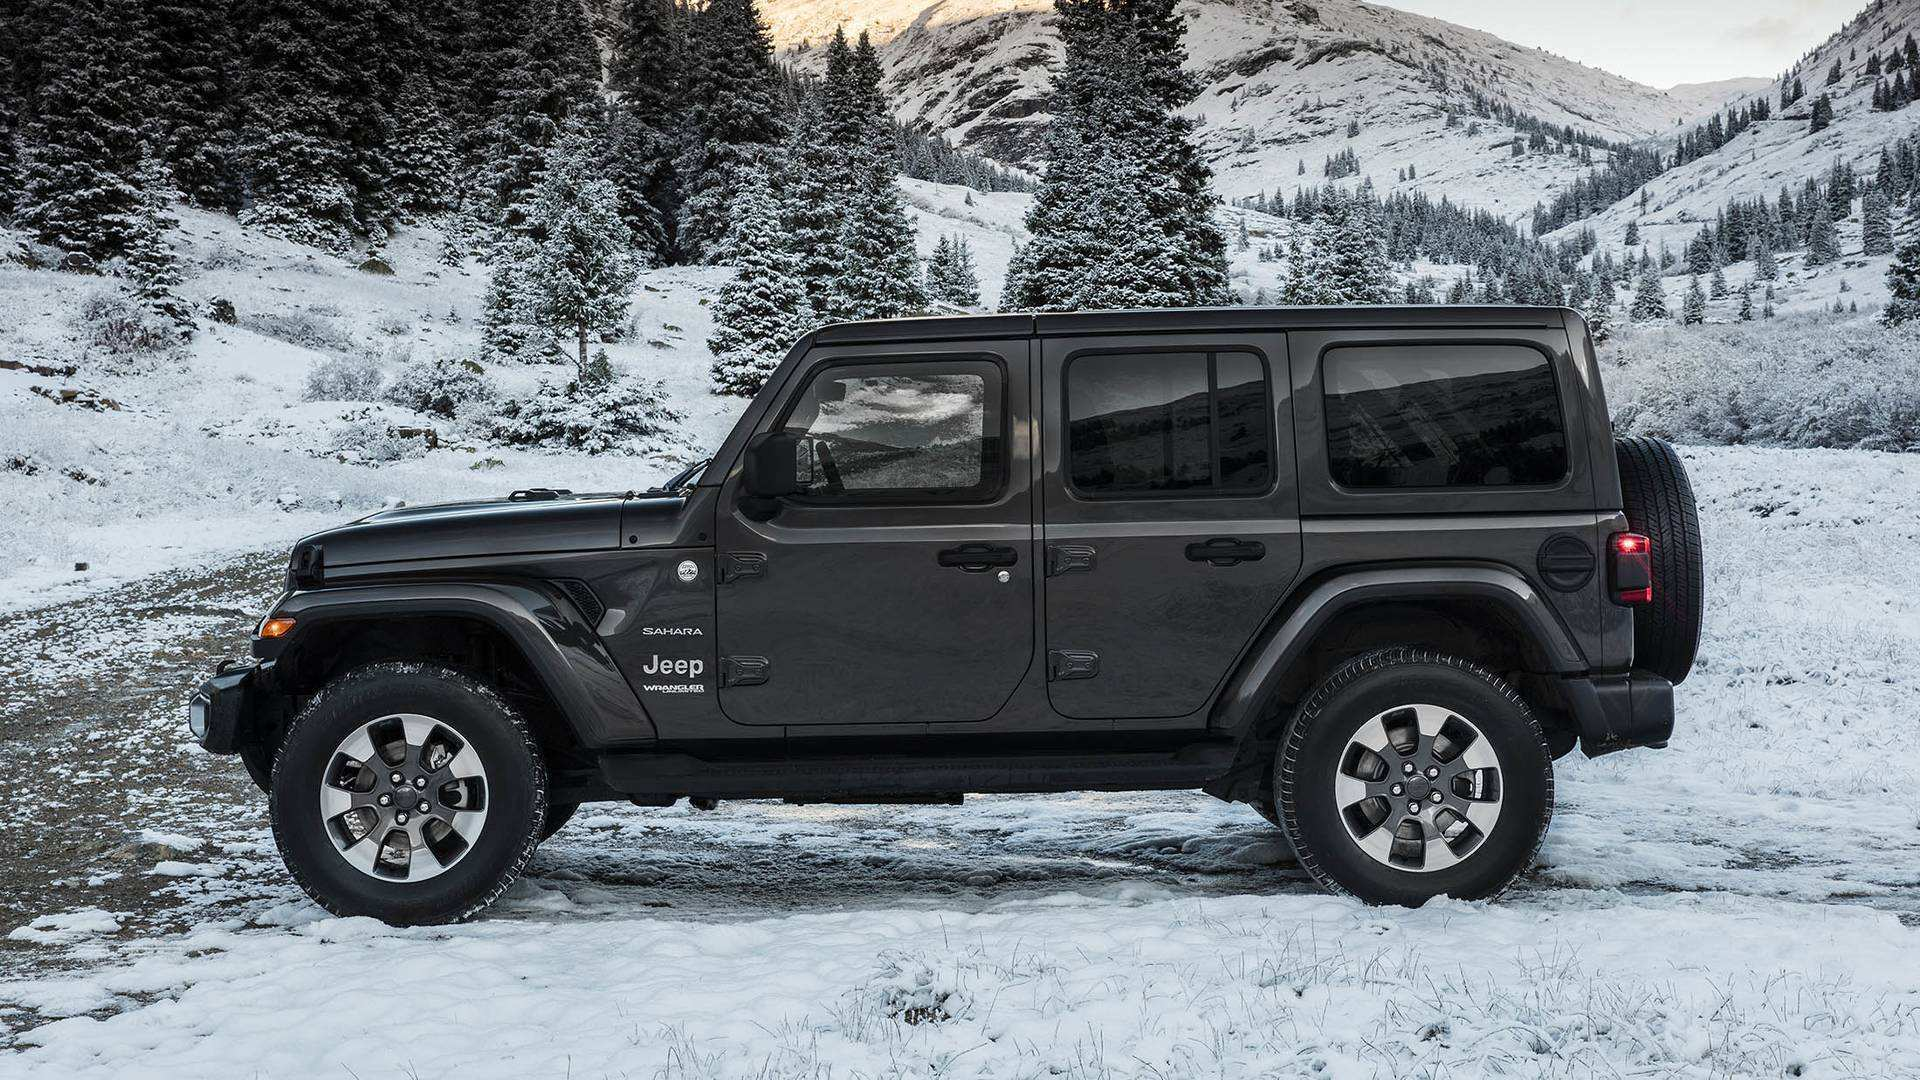 82 All New 2020 Jeep Wrangler Review And Release Date